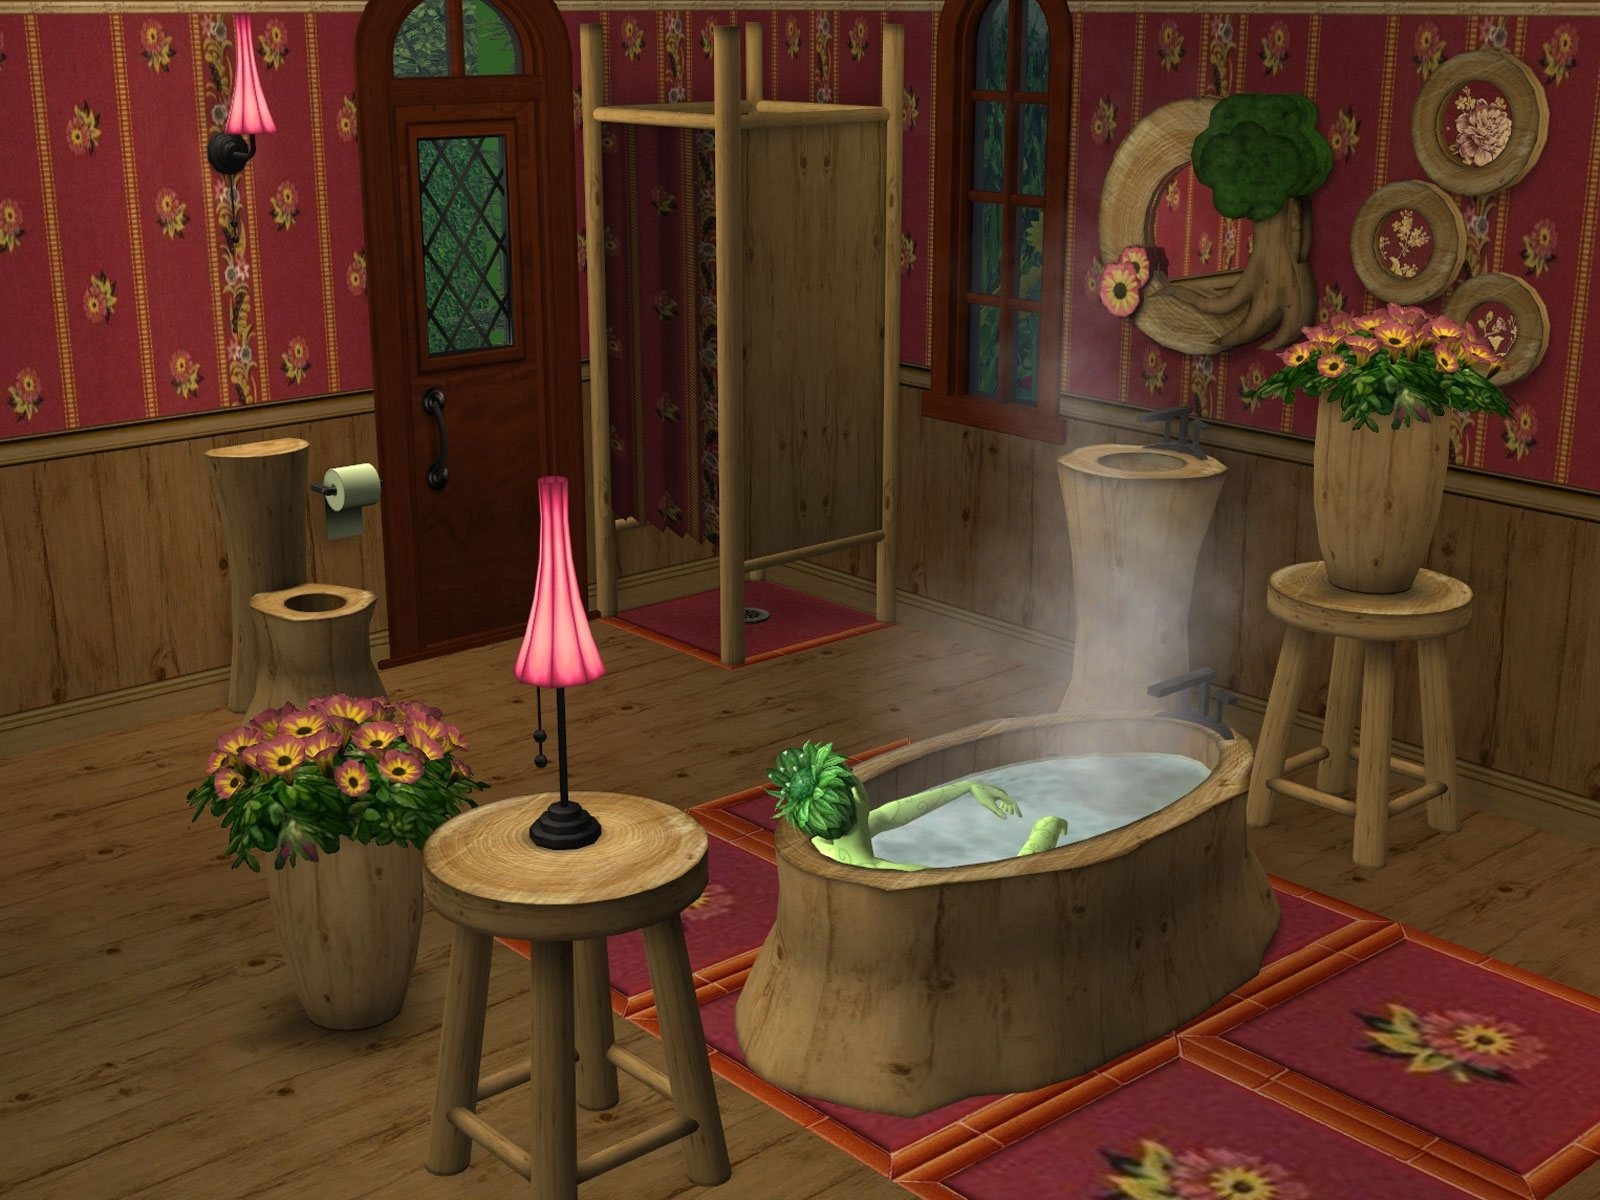 Parsimonious The Sims 2: Furniture & Objects 10+ Sims 2 Bathroom Inspirations